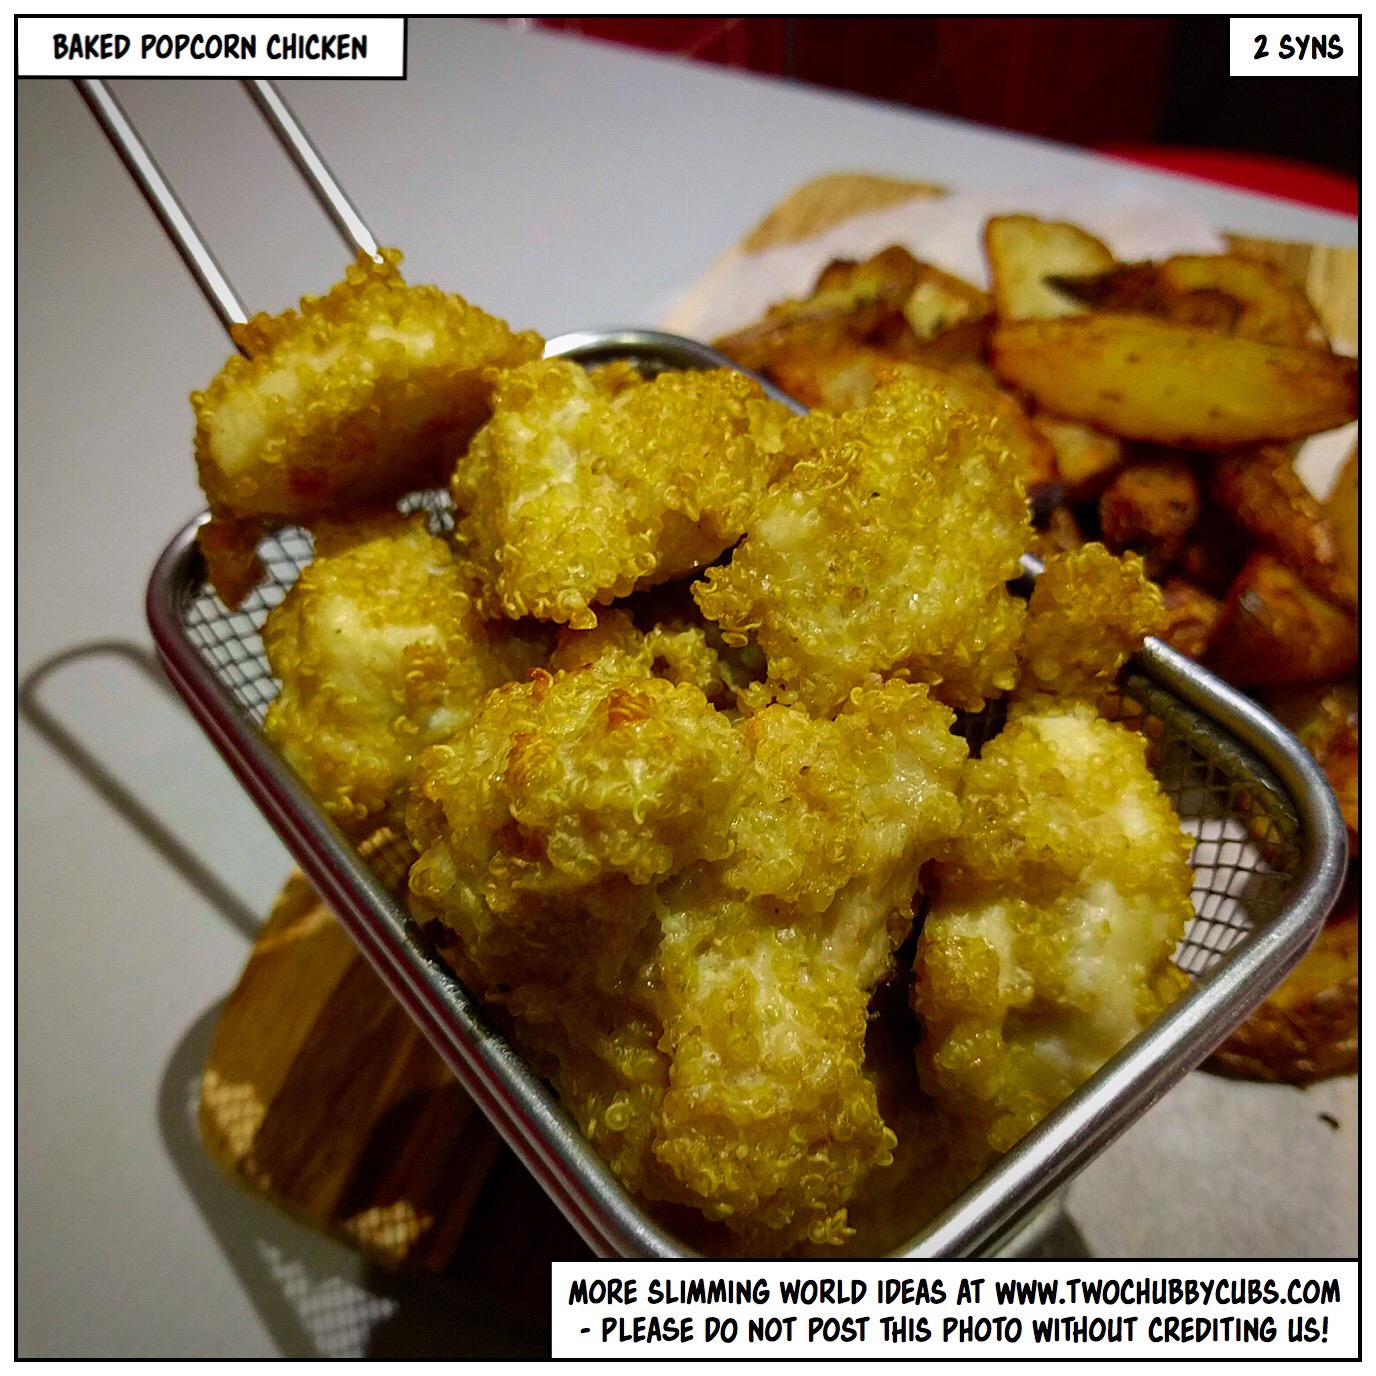 popcorn chicken plus new york: part two - twochubbycubs